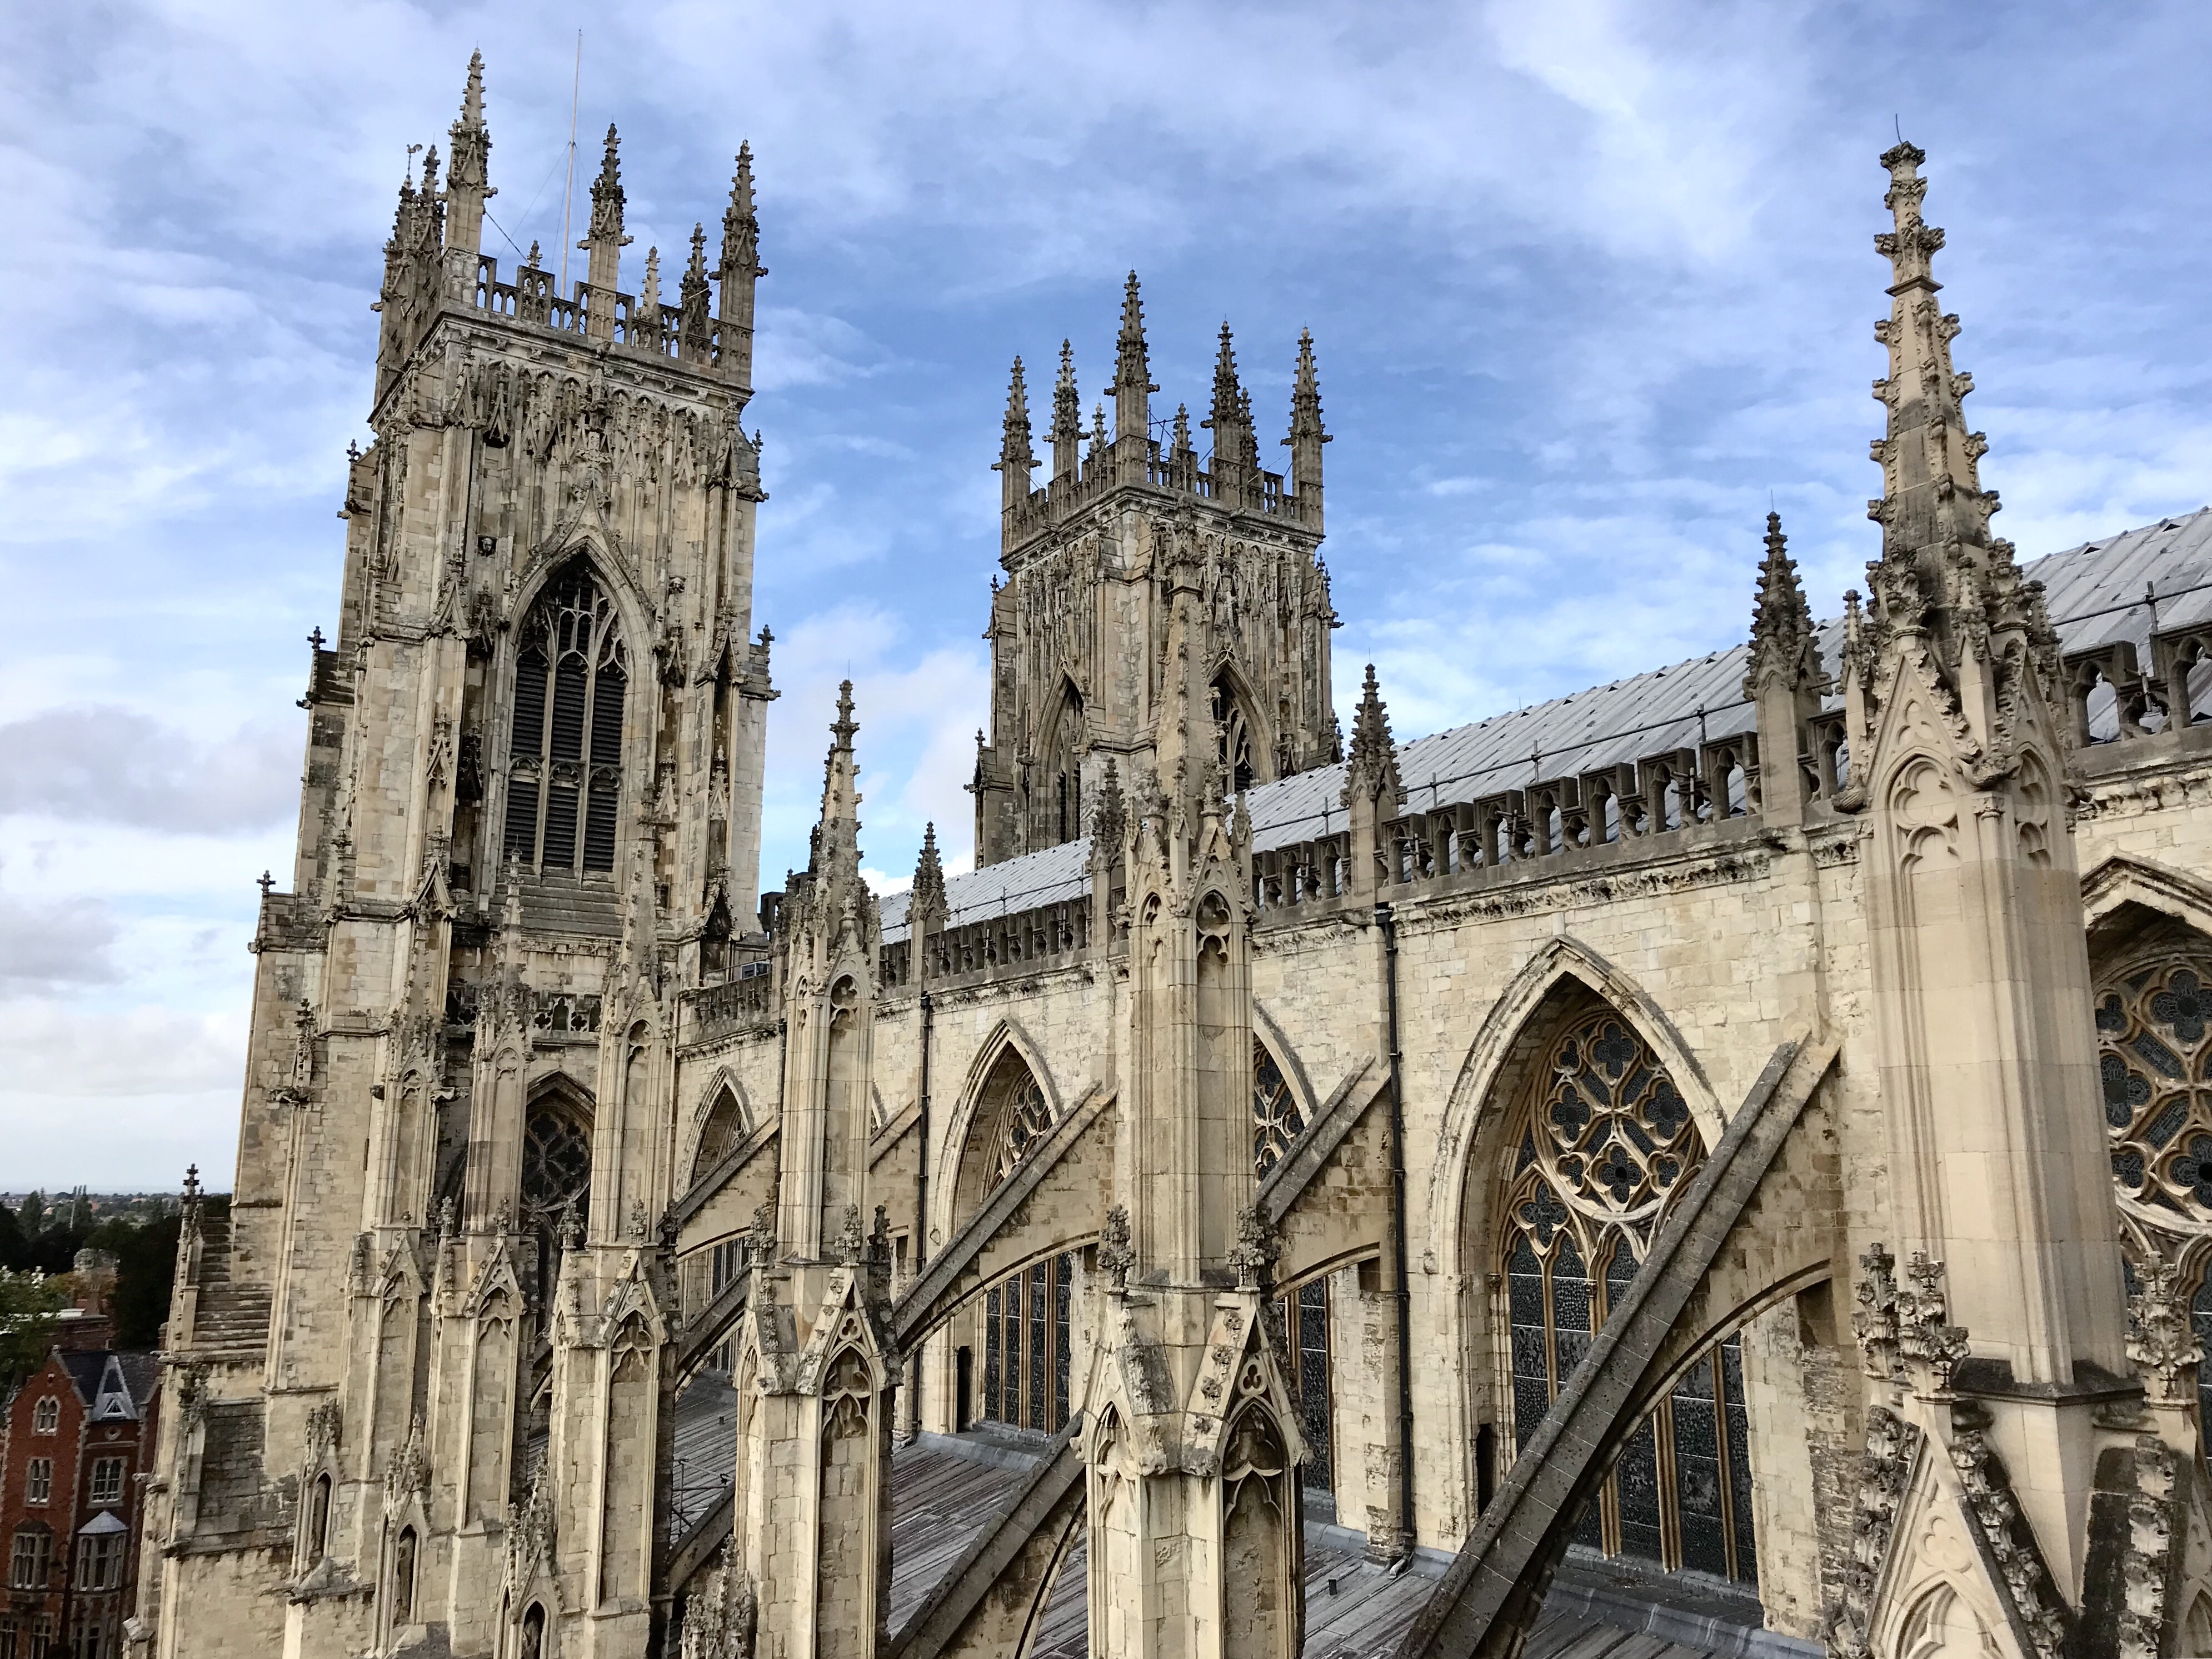 York Minster, the largest medieval Gothic cathedral in